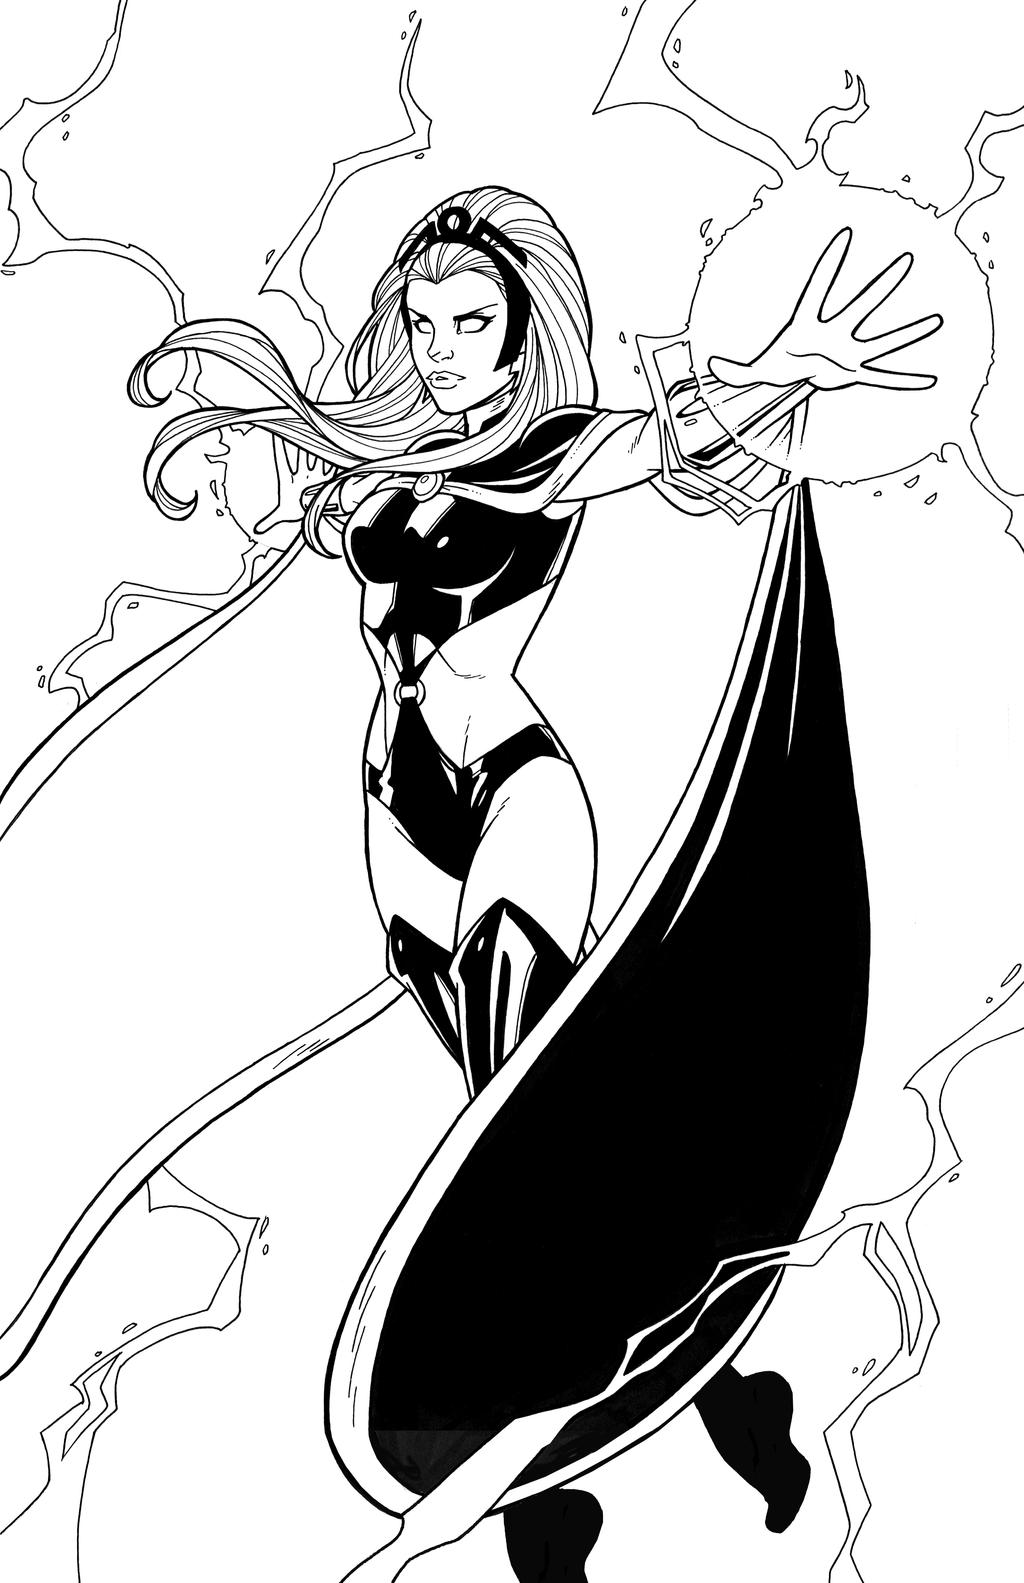 Free coloring pages x men - Storm 2011 By Jamiefayx Storm 2011 By Jamiefayx